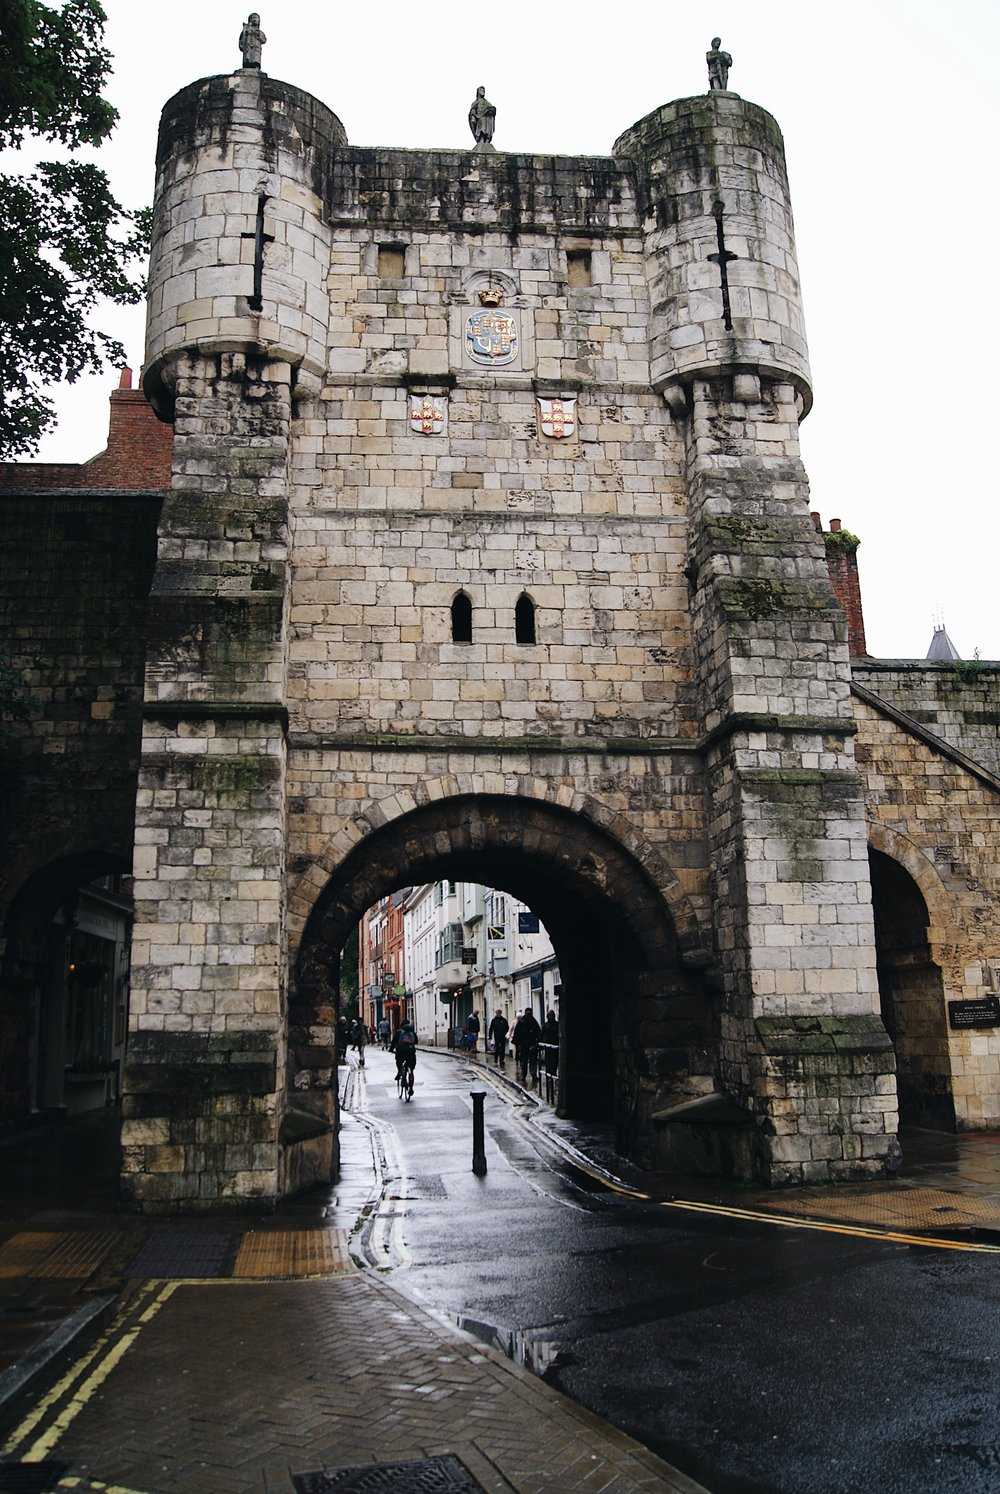 One of the Gatehouses of York